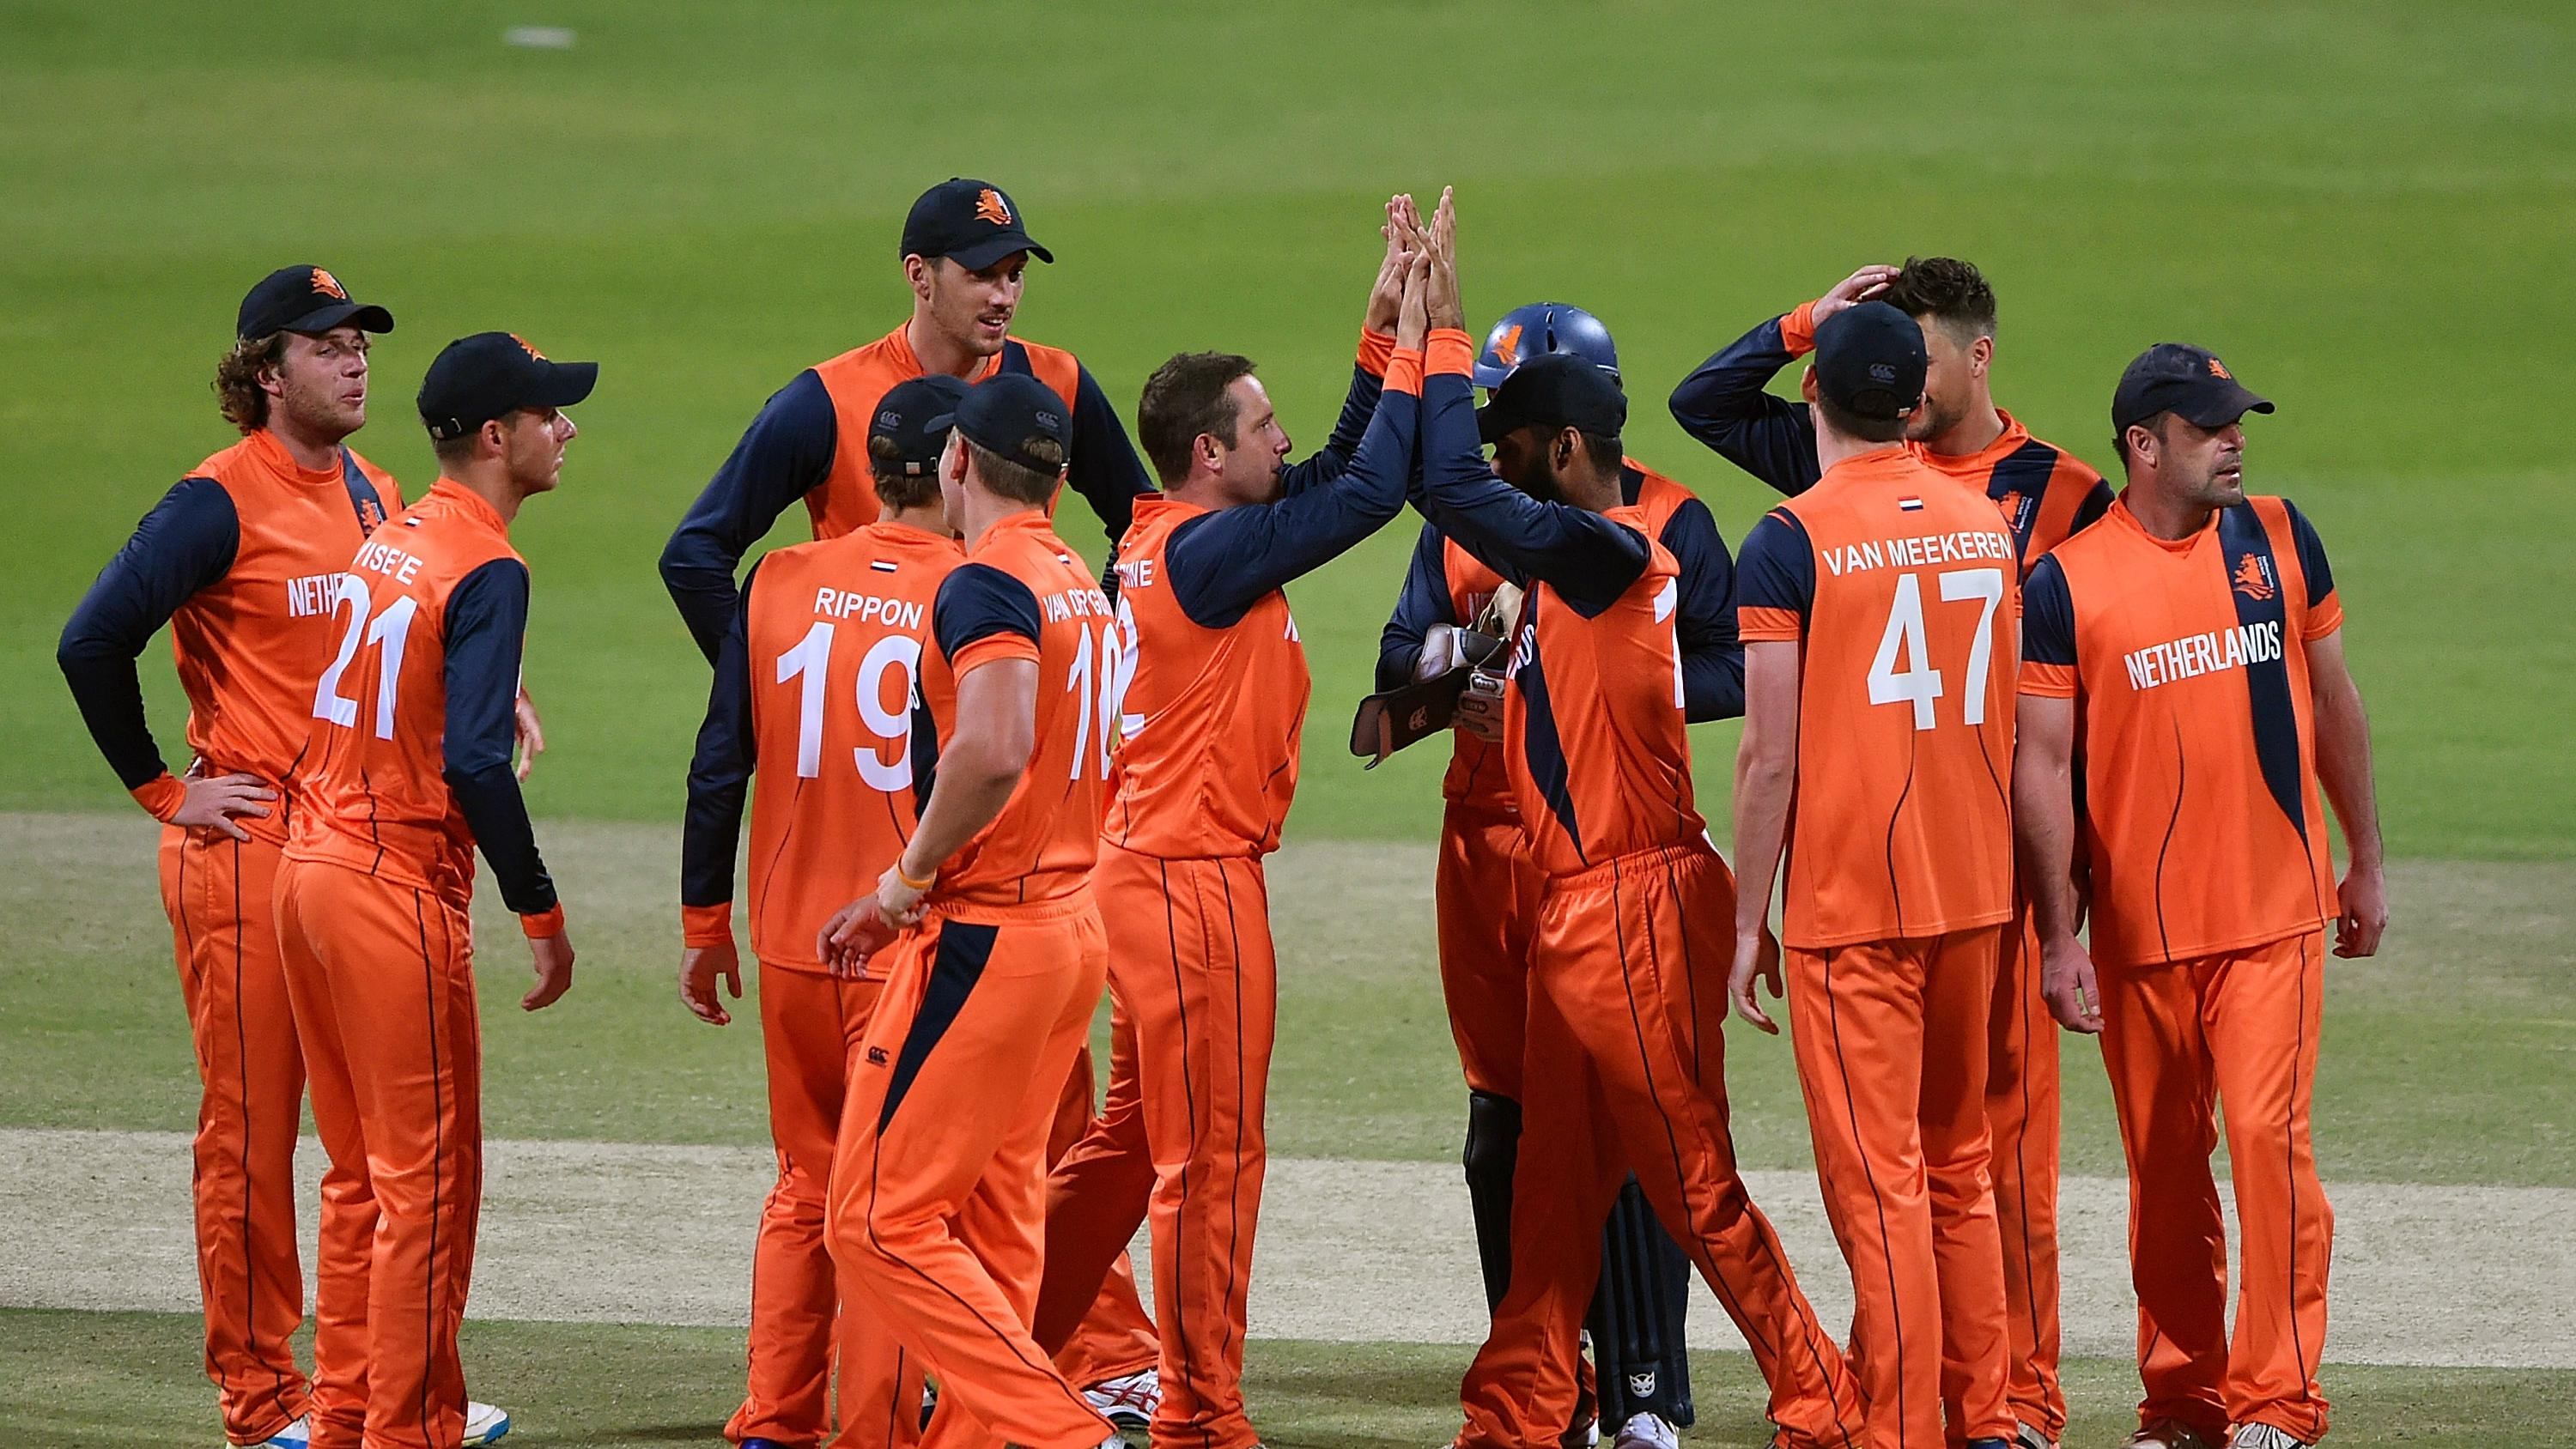 Netherlands And Scotland Aim High In World Cup Qualifier